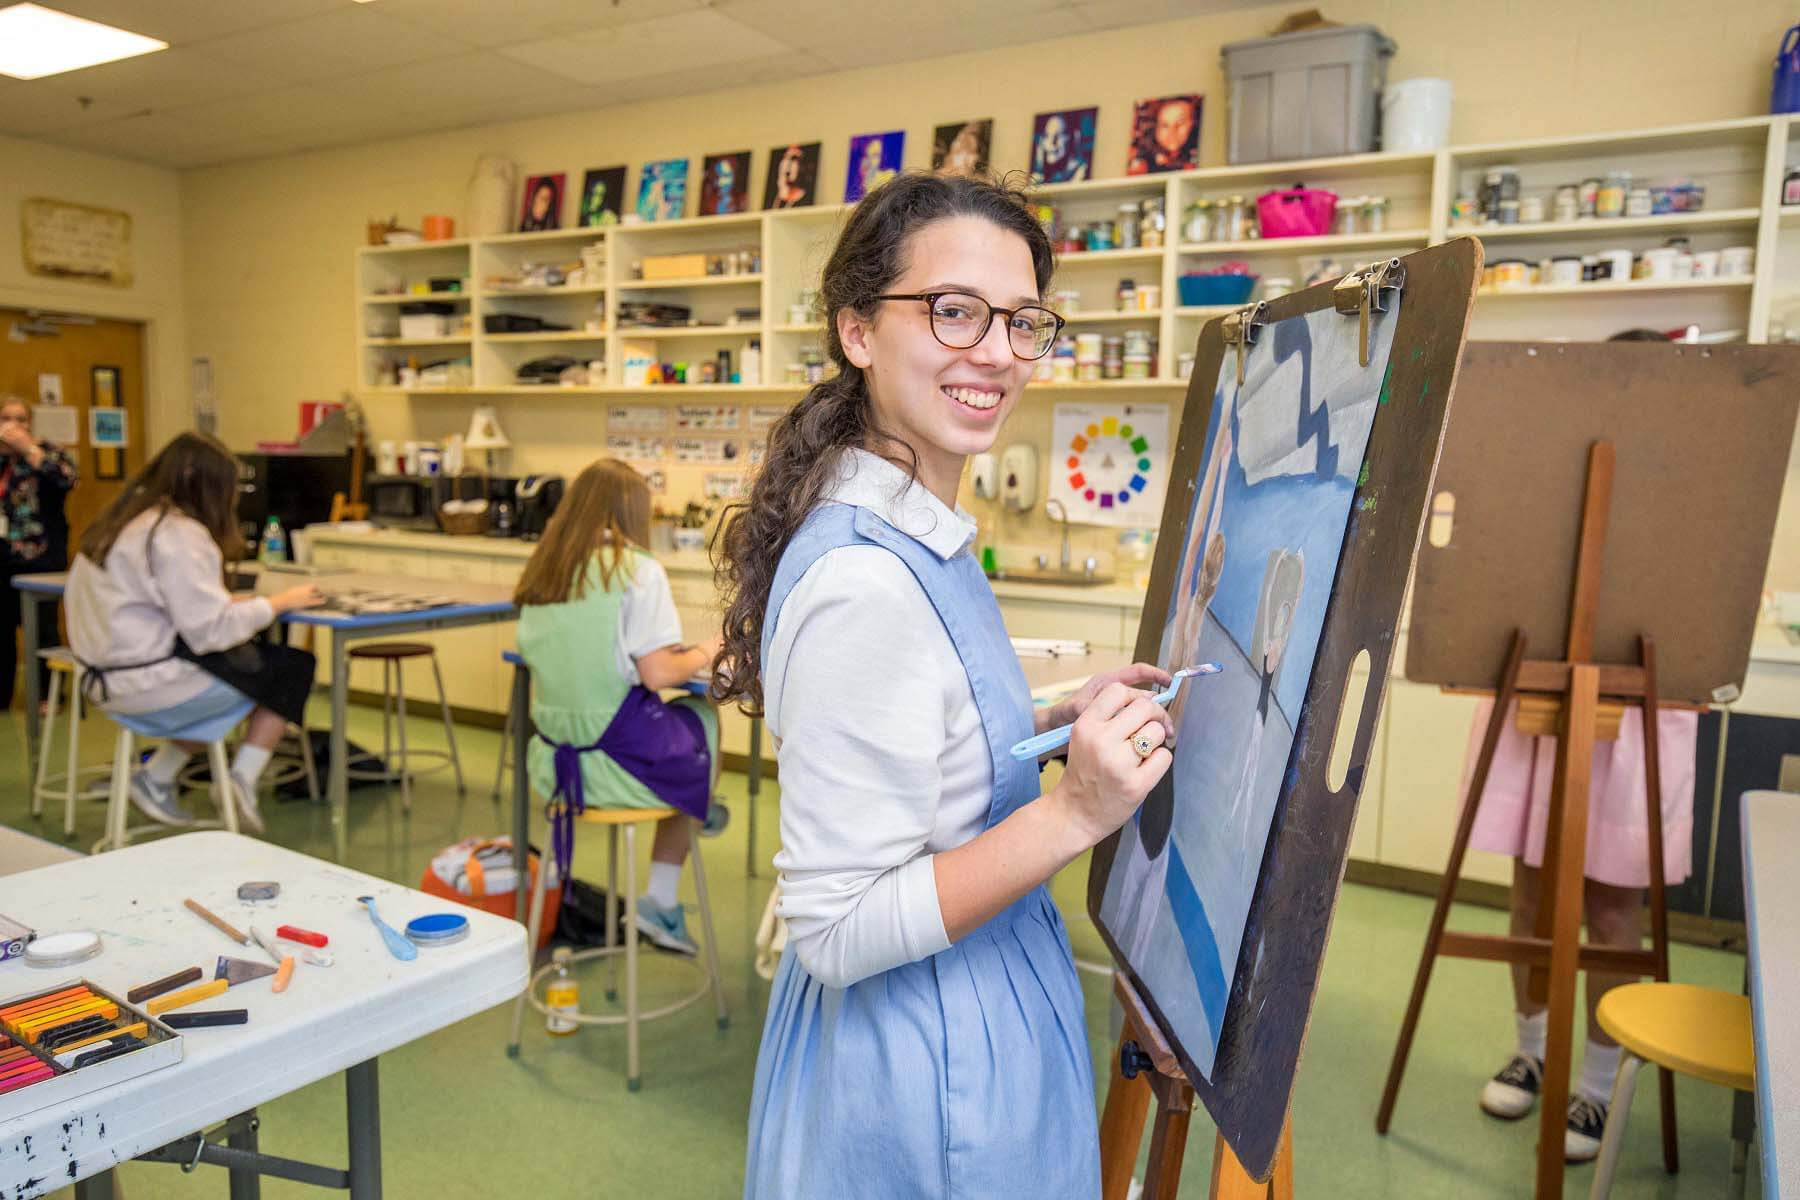 Young girls painting in art class